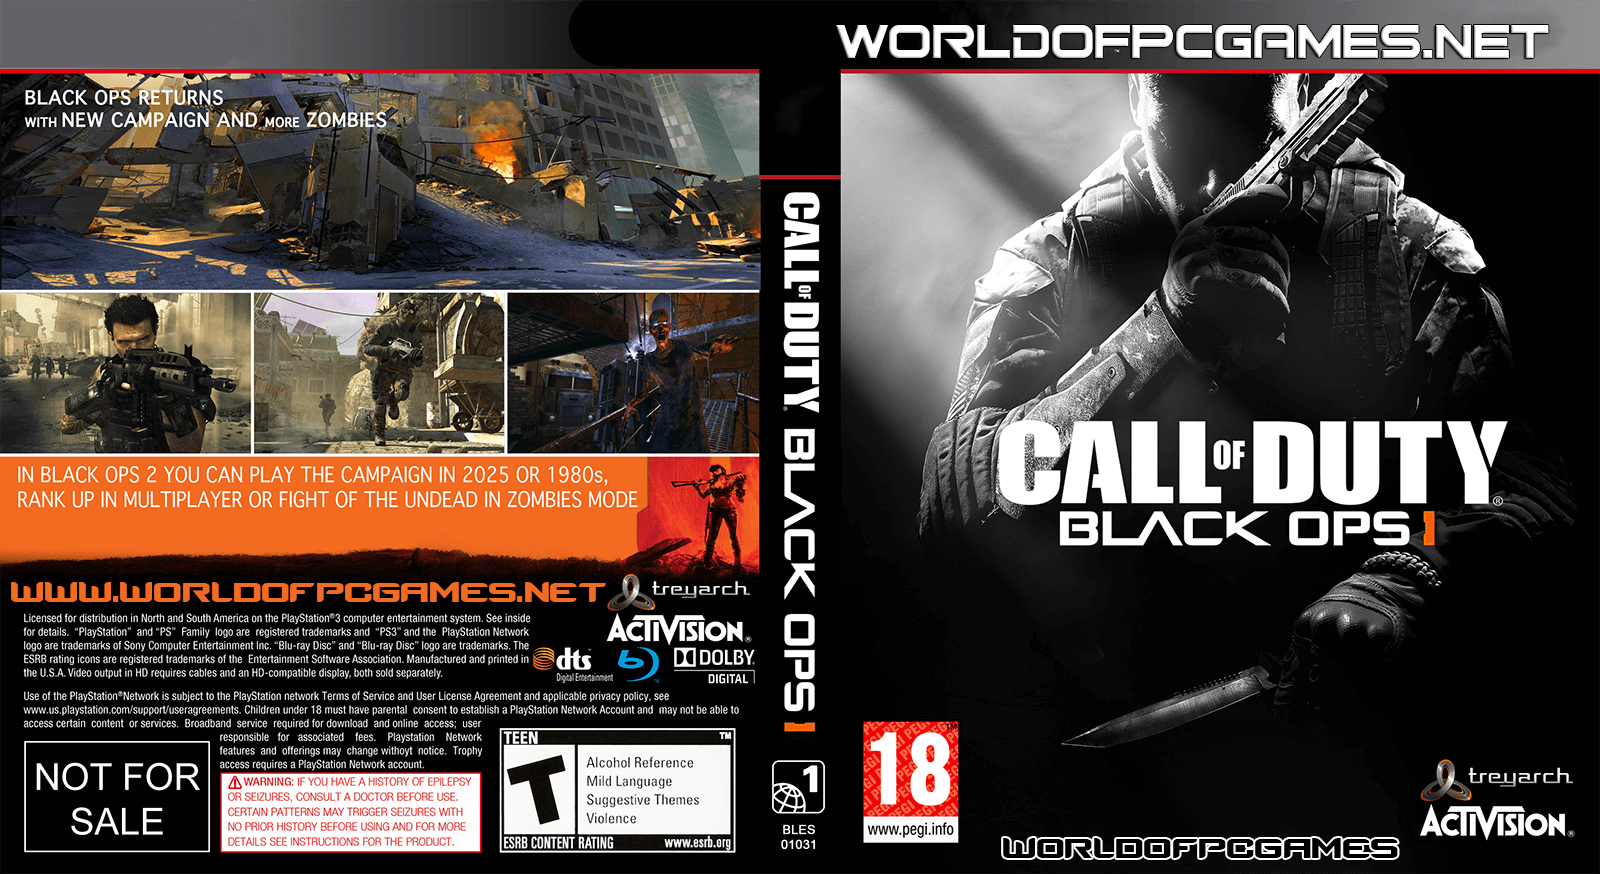 Call Of Duty Black Ops 1 Free Download PC Game Full Version ISO